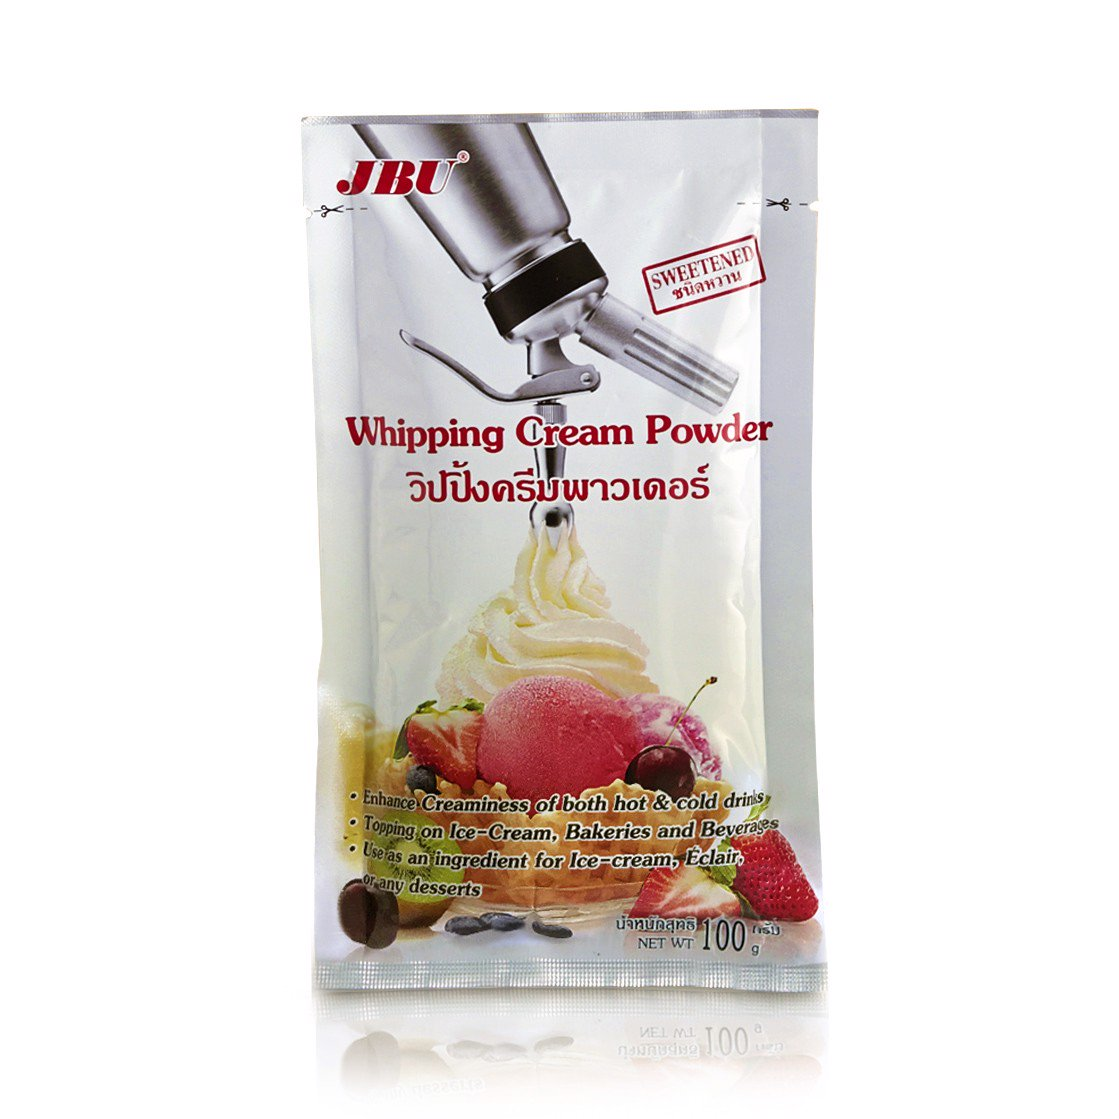 whipping-cream-jbu-goi-100g